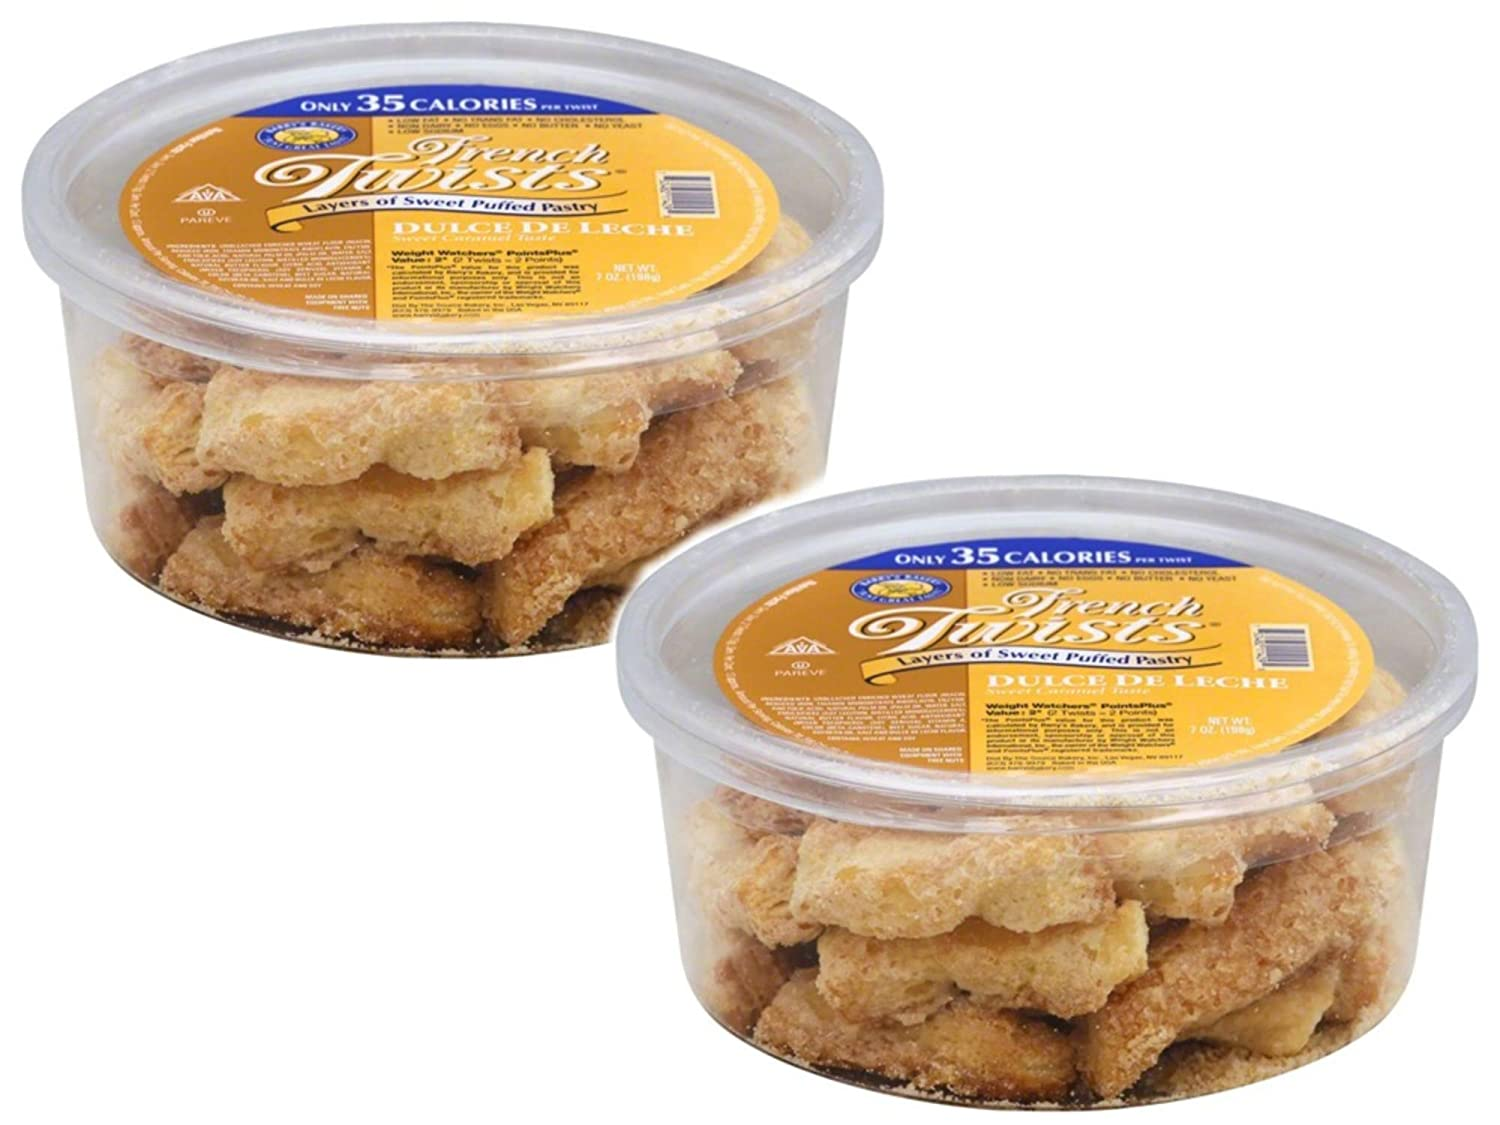 2 pack - Barrys Bakery Dulce de Leche French Twists, 7 oz each: Amazon.com: Grocery & Gourmet Food